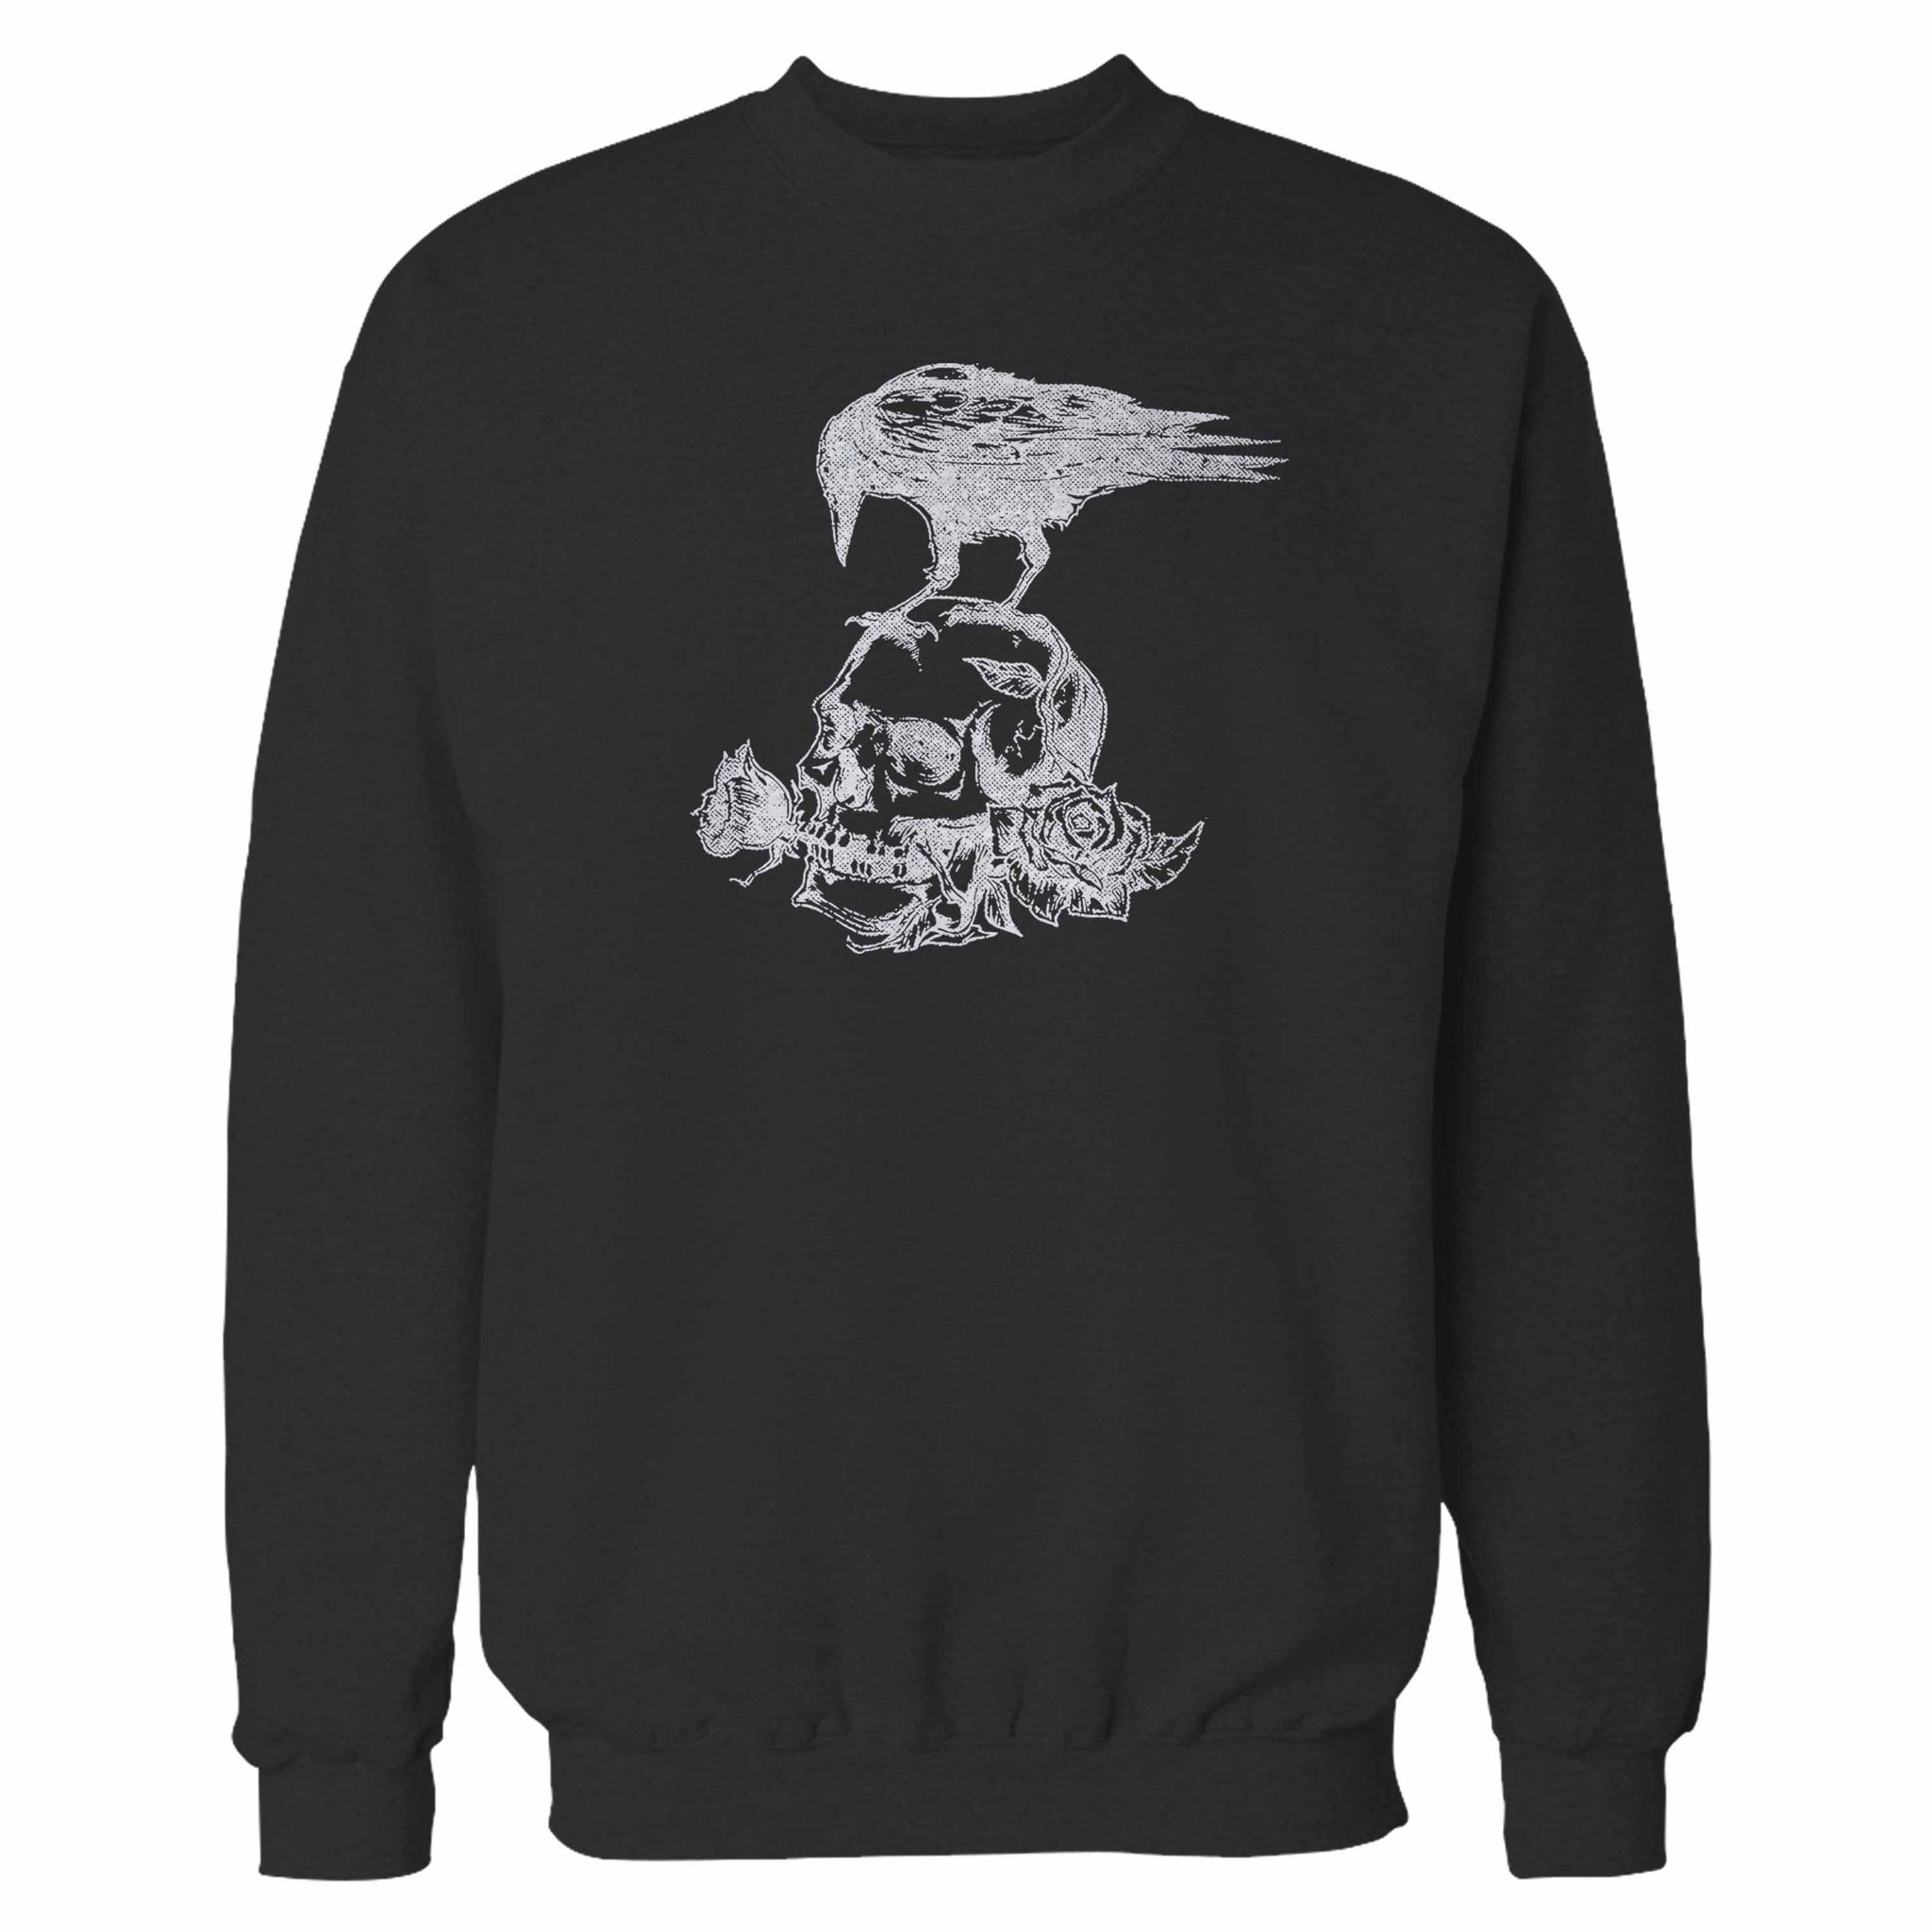 Skull Roses Crow Tattoo Sweatshirt